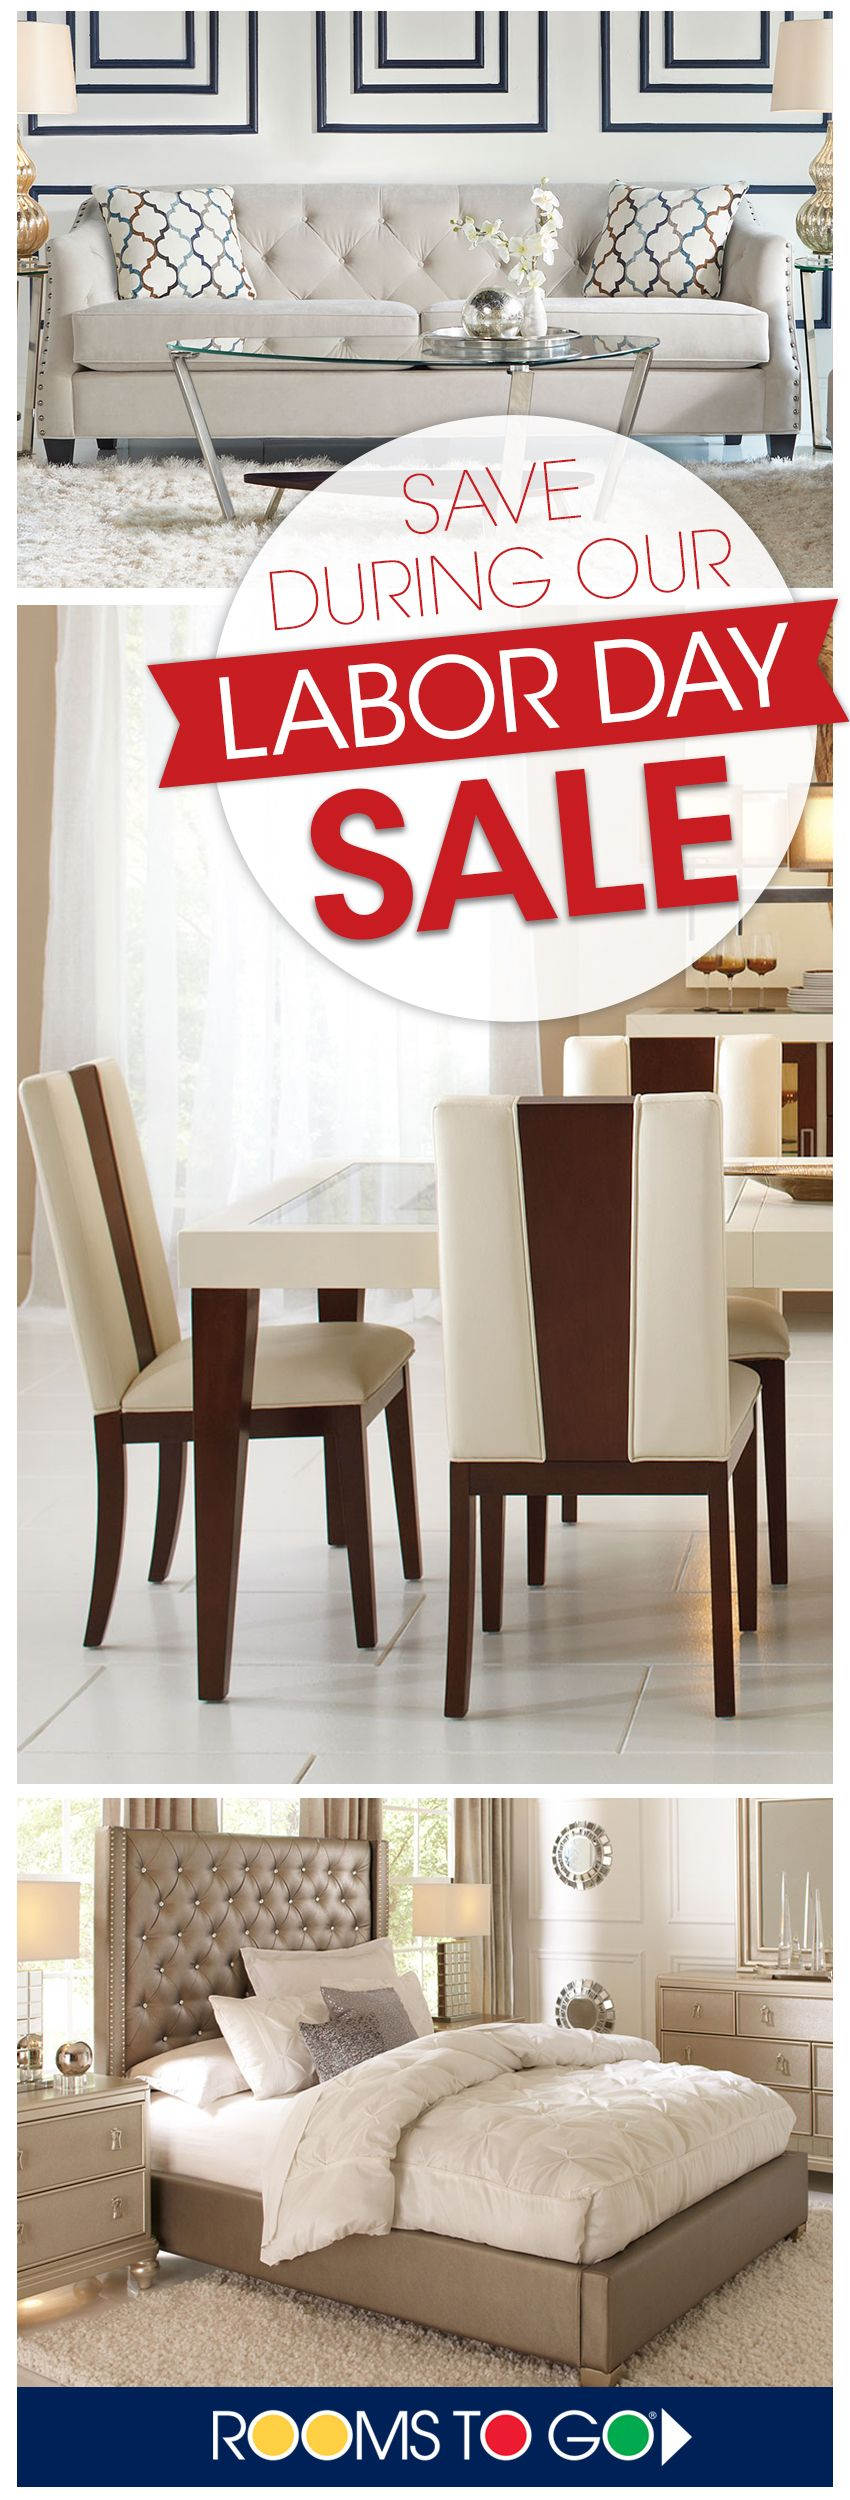 Visit Rooms To Go Now During Our Labor Day Sale And Save On Amazing